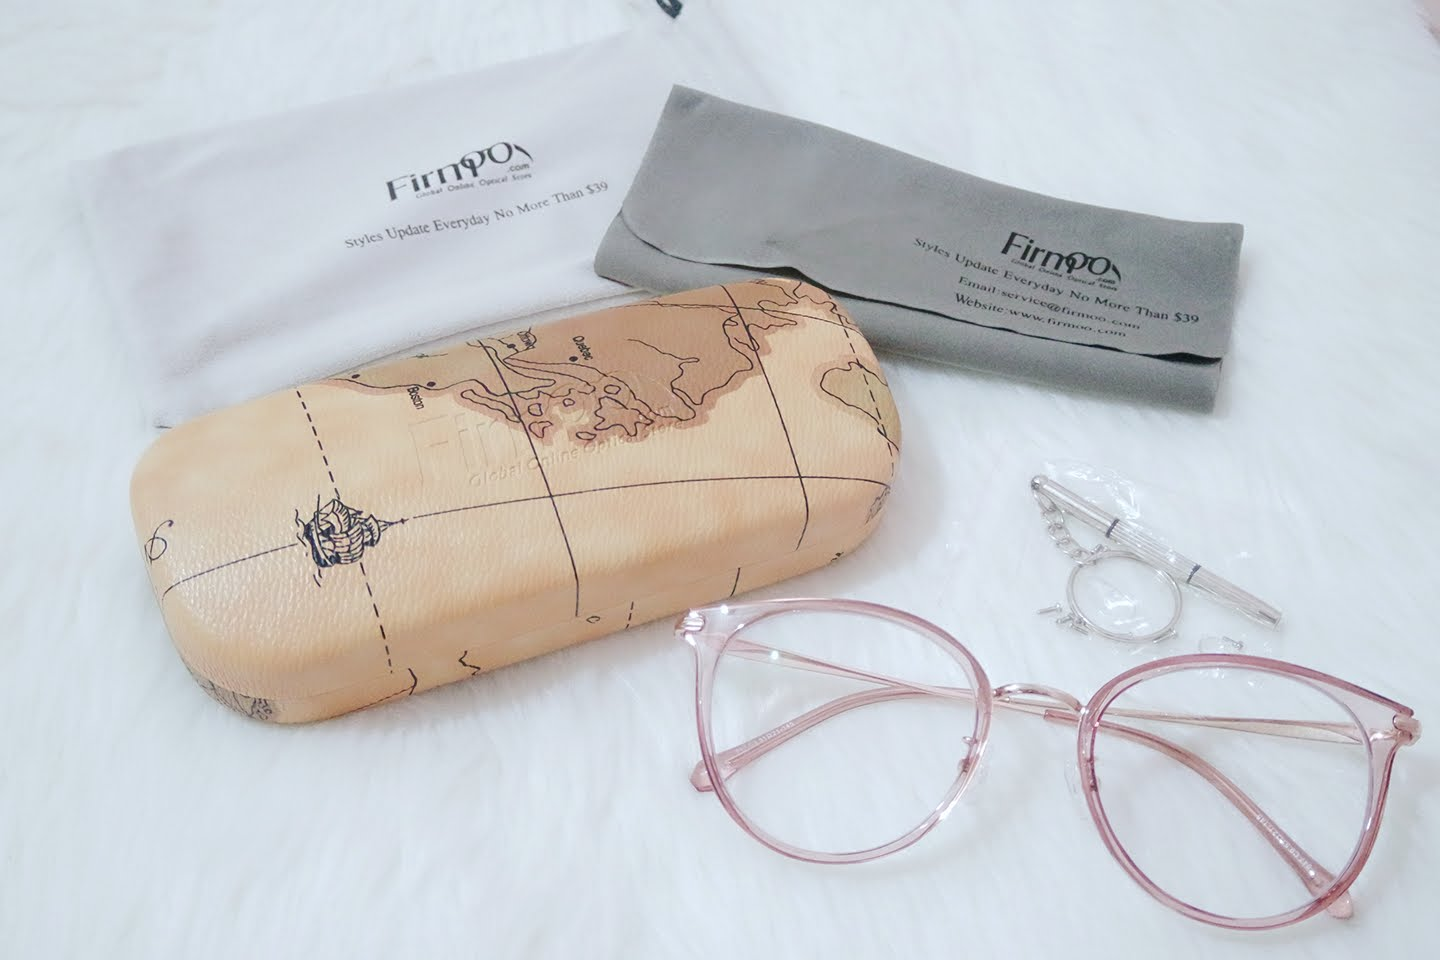 87f8d6d7dad New Glasses from Firmoo Optical   Affordable Eyeglasses Review ...